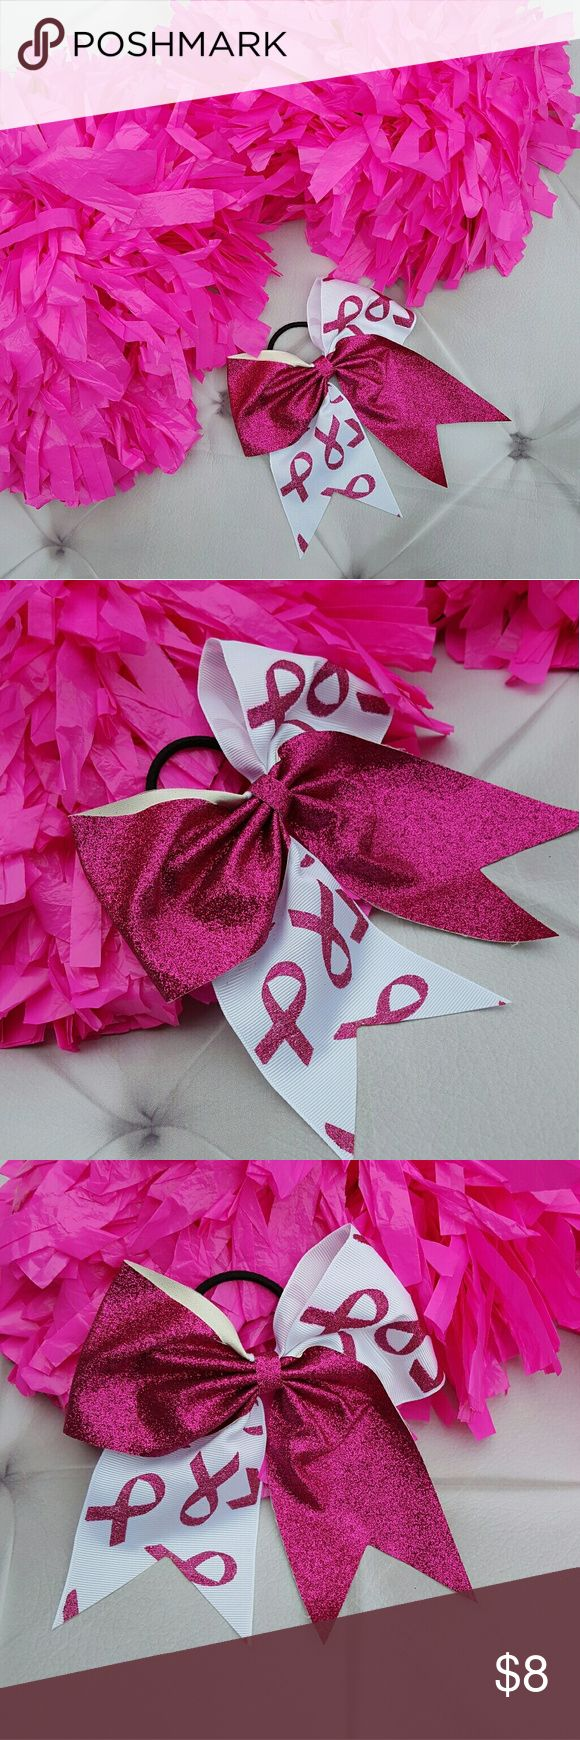 Cheer bow holder for cheer bows and hair bows cheer bow hanger - Glitter Pink Breast Cancer Awareness Cheer Bow Big Bowscheer